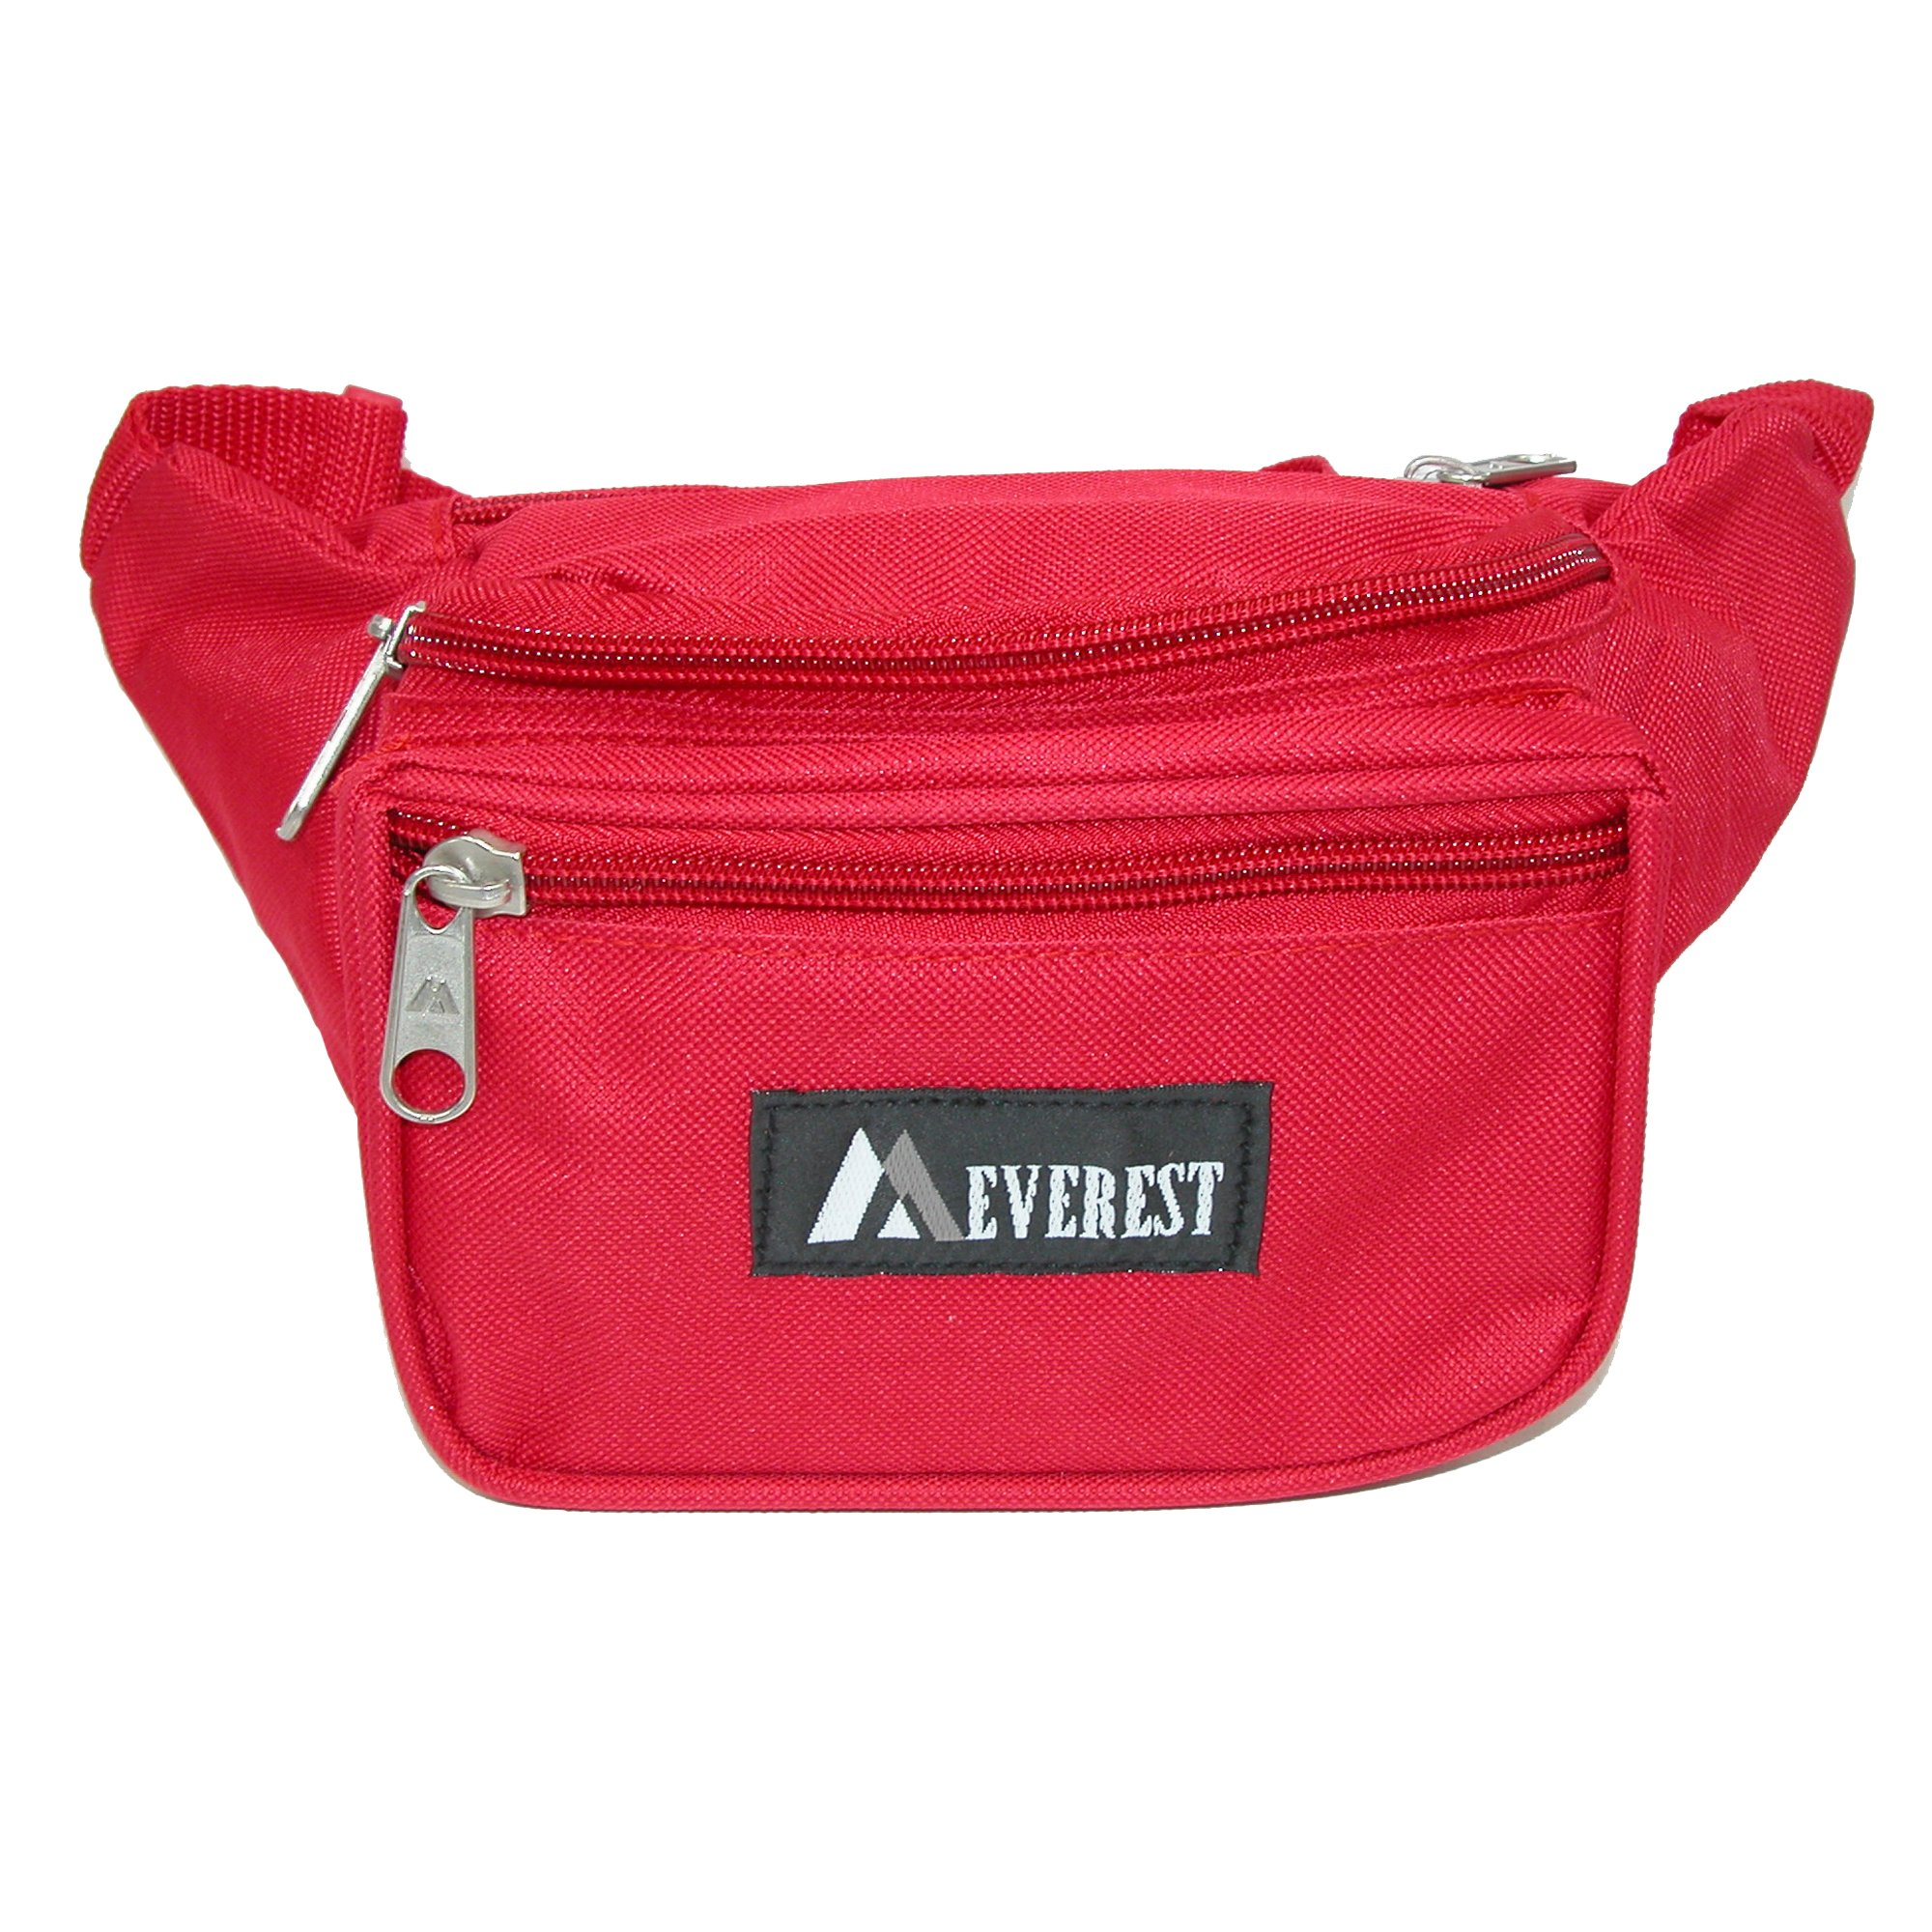 Everest Durable Fabric Waist Packs (Case of 50), Red